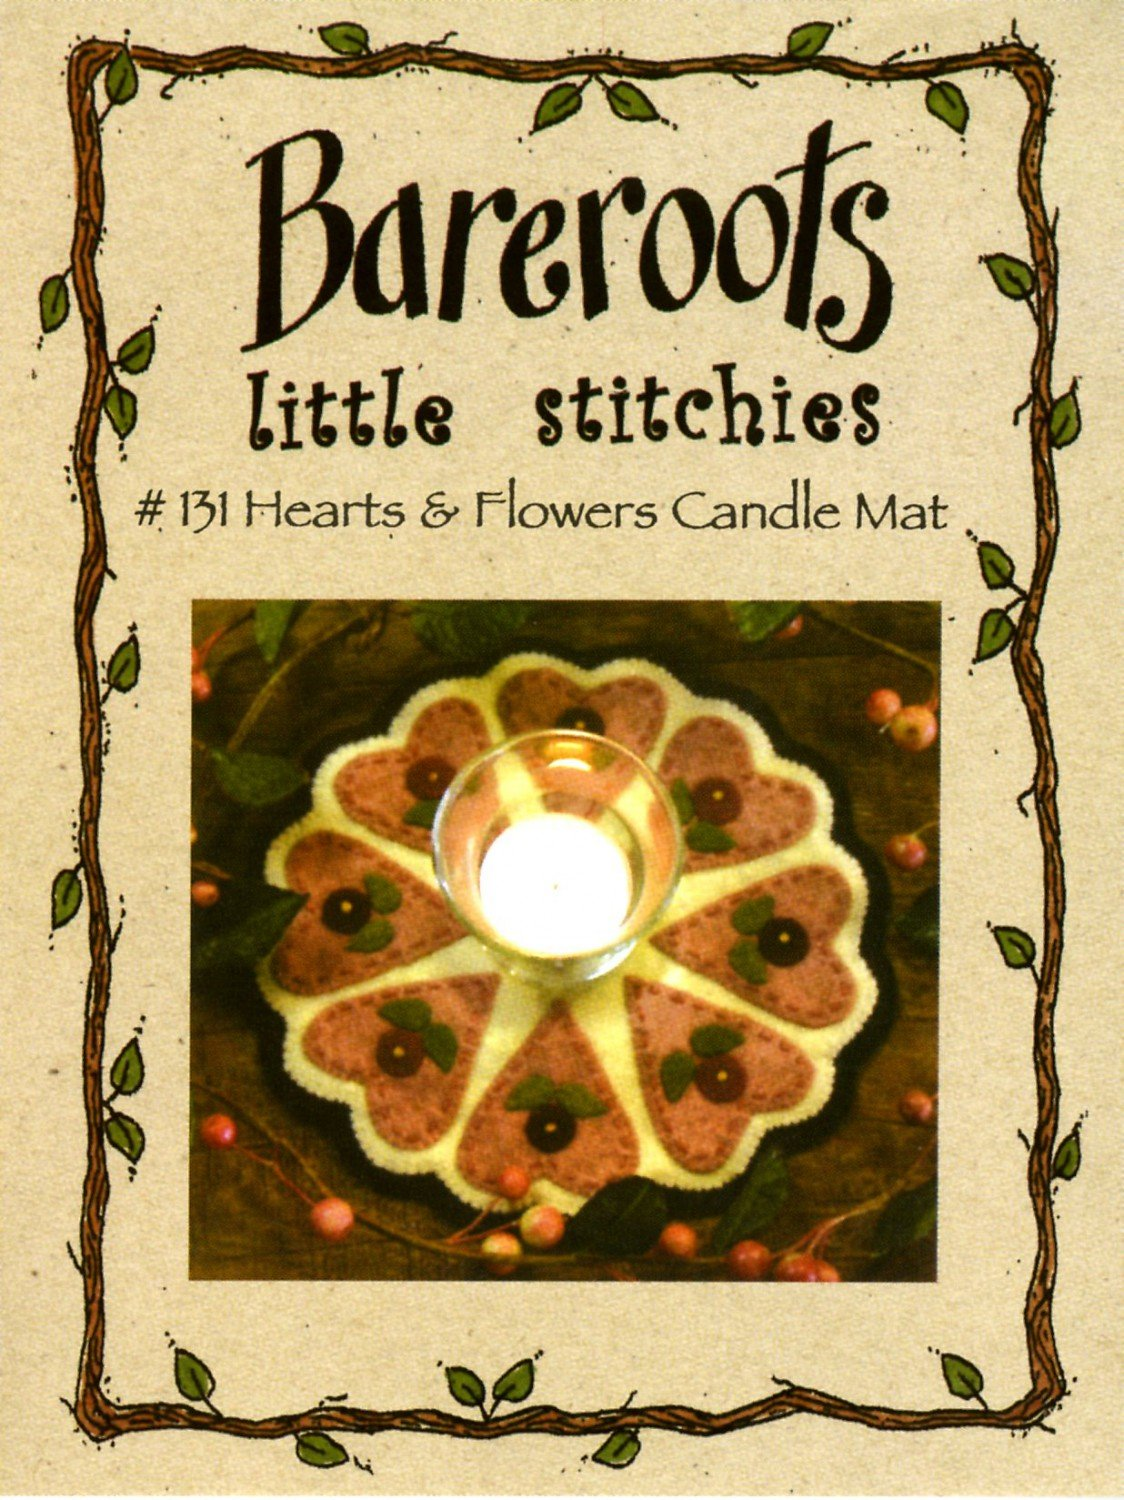 Hearts & Flowers Candle Mat by Bareroots Little Stitchies